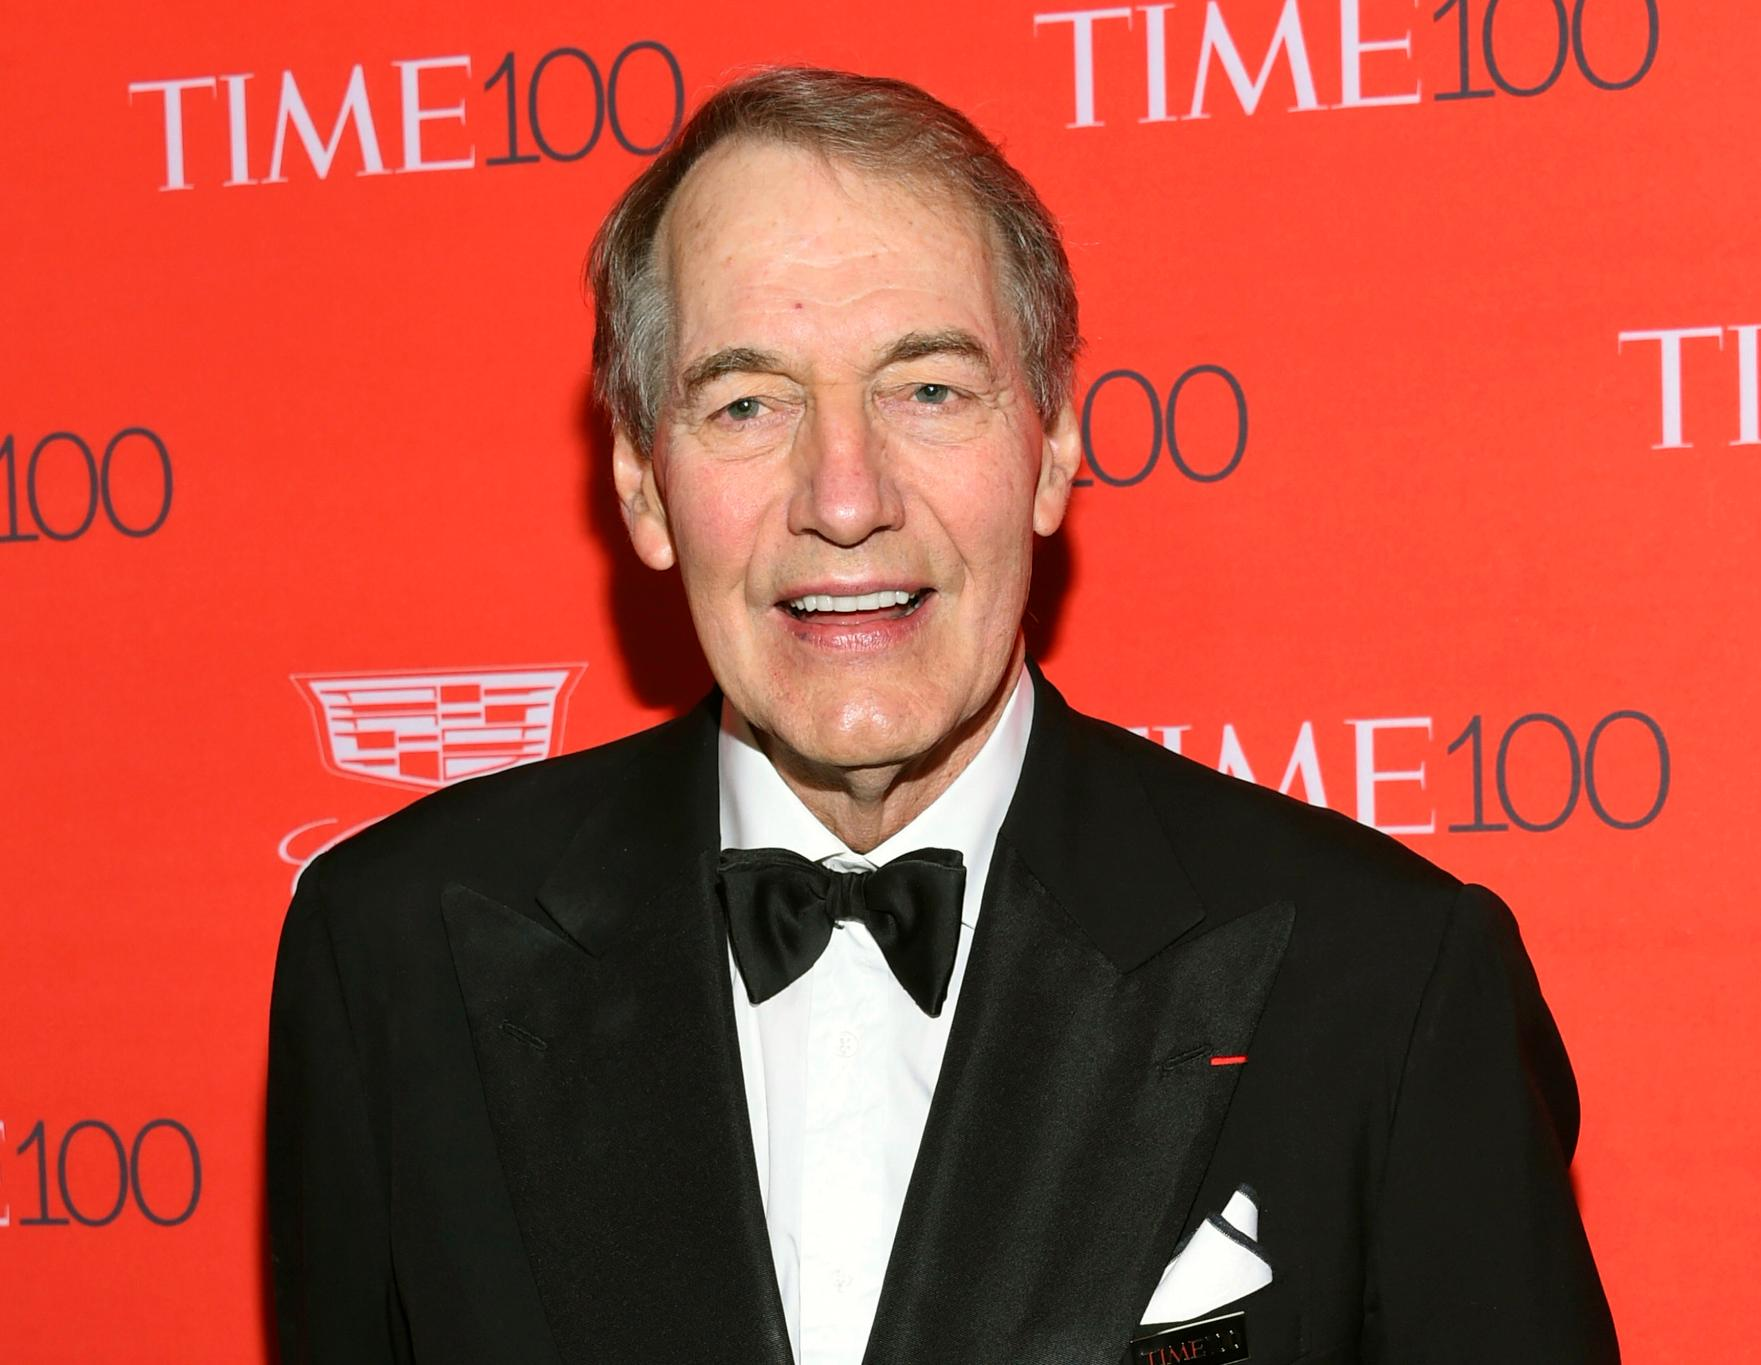 FILE - In this April 26, 2016 file photo, Charlie Rose attends the TIME 100 Gala, celebrating the 100 most influential people in the world in New York. Some U.S. universities are reviewing whether to revoke honorary degrees given to prominent men accused of sexual misconduct. North Carolina State, Oswego State and Montclair State are reviewing honorary degrees given to Rose, who has been accused of harassment.  (Photo by Evan Agostini/Invision/AP, File)